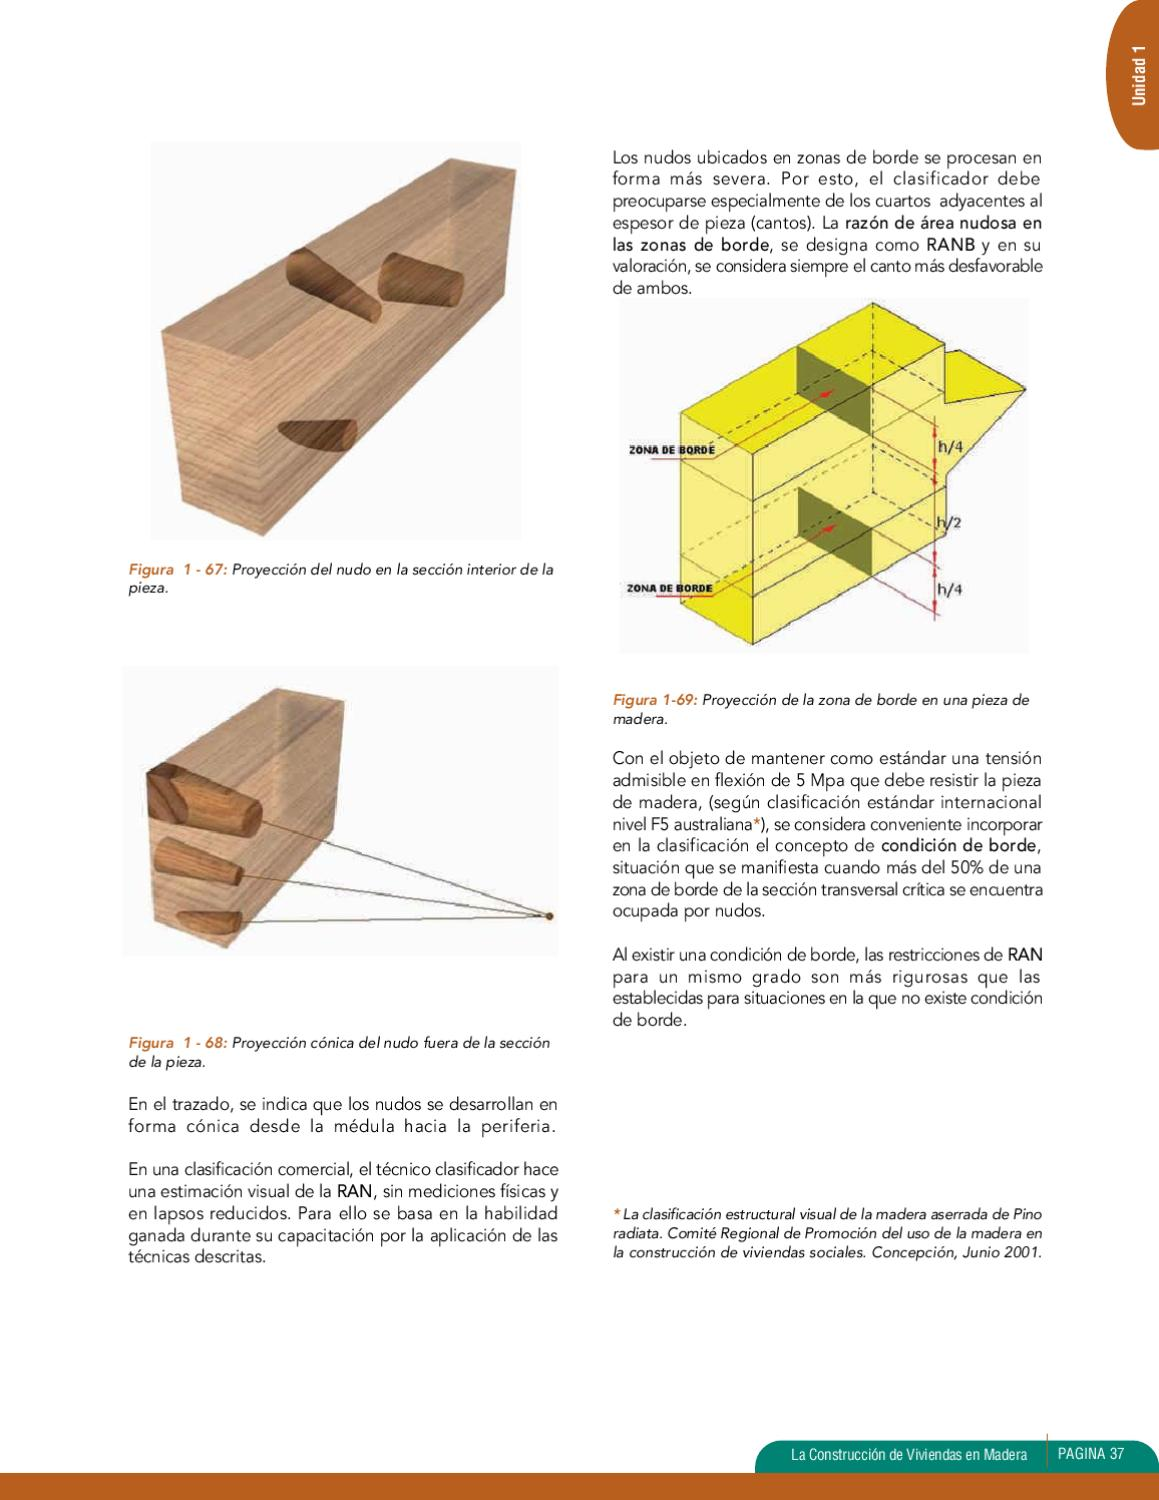 Manual de construccion en madera by manuel gonzalez issuu for Construccion en madera